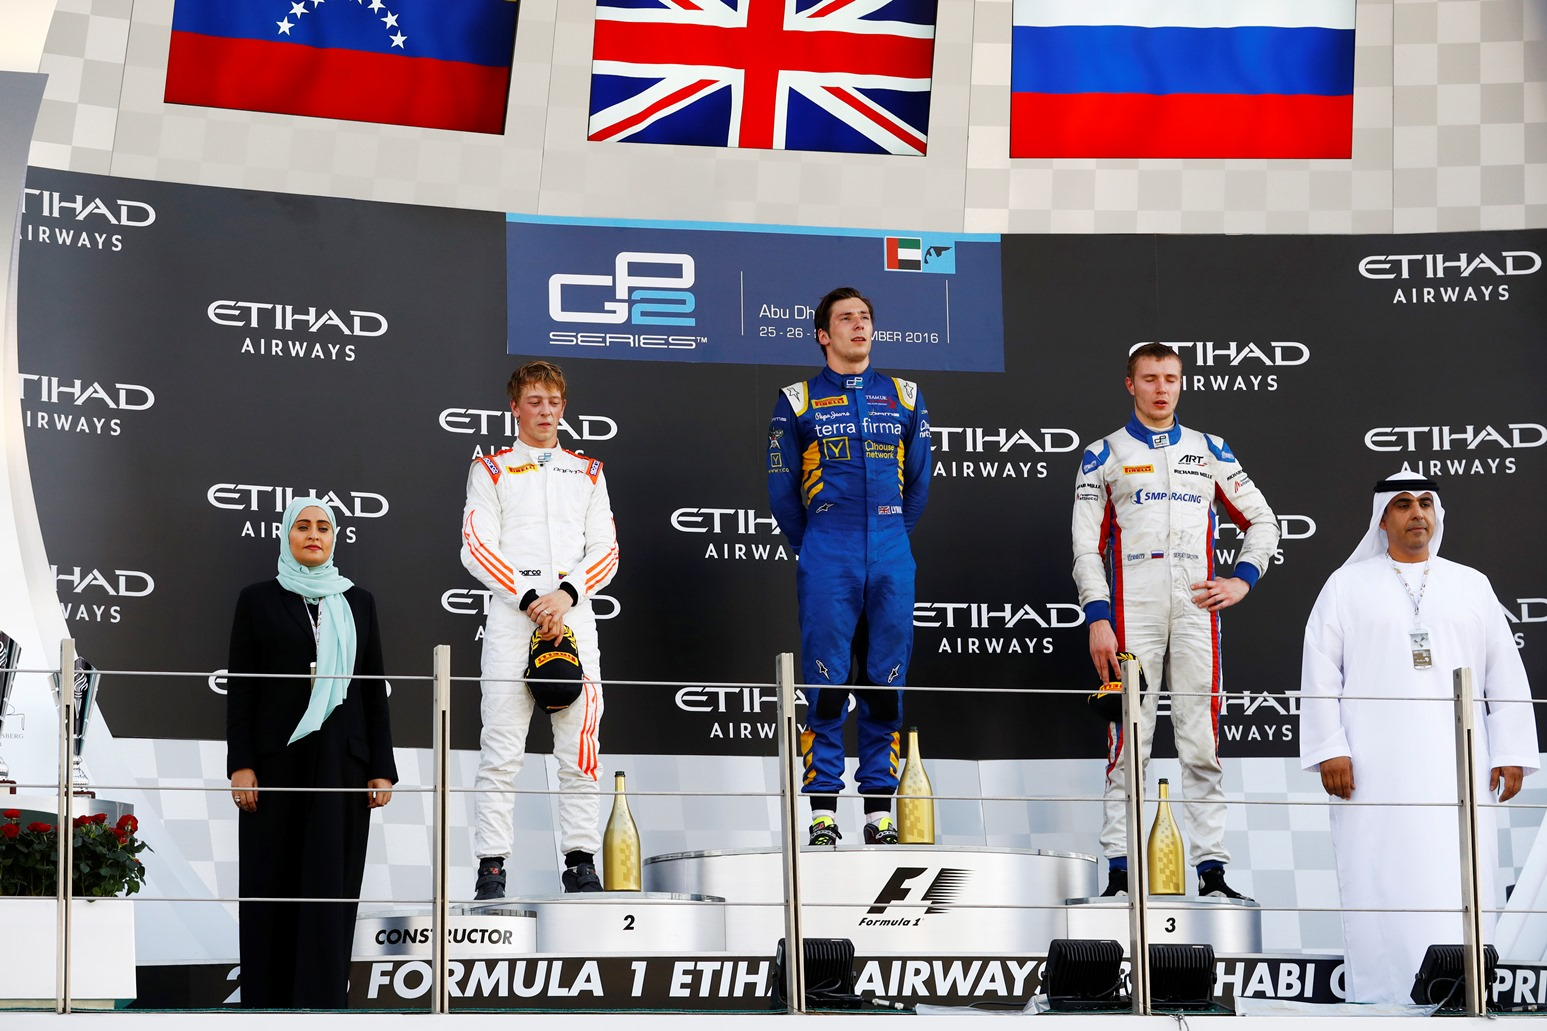 INMEJORABLE PODIO DE JOHNNY CECOTTO JR EN LA ÚLTIMA CARRERA DEL AÑO EN GP2 SERIES